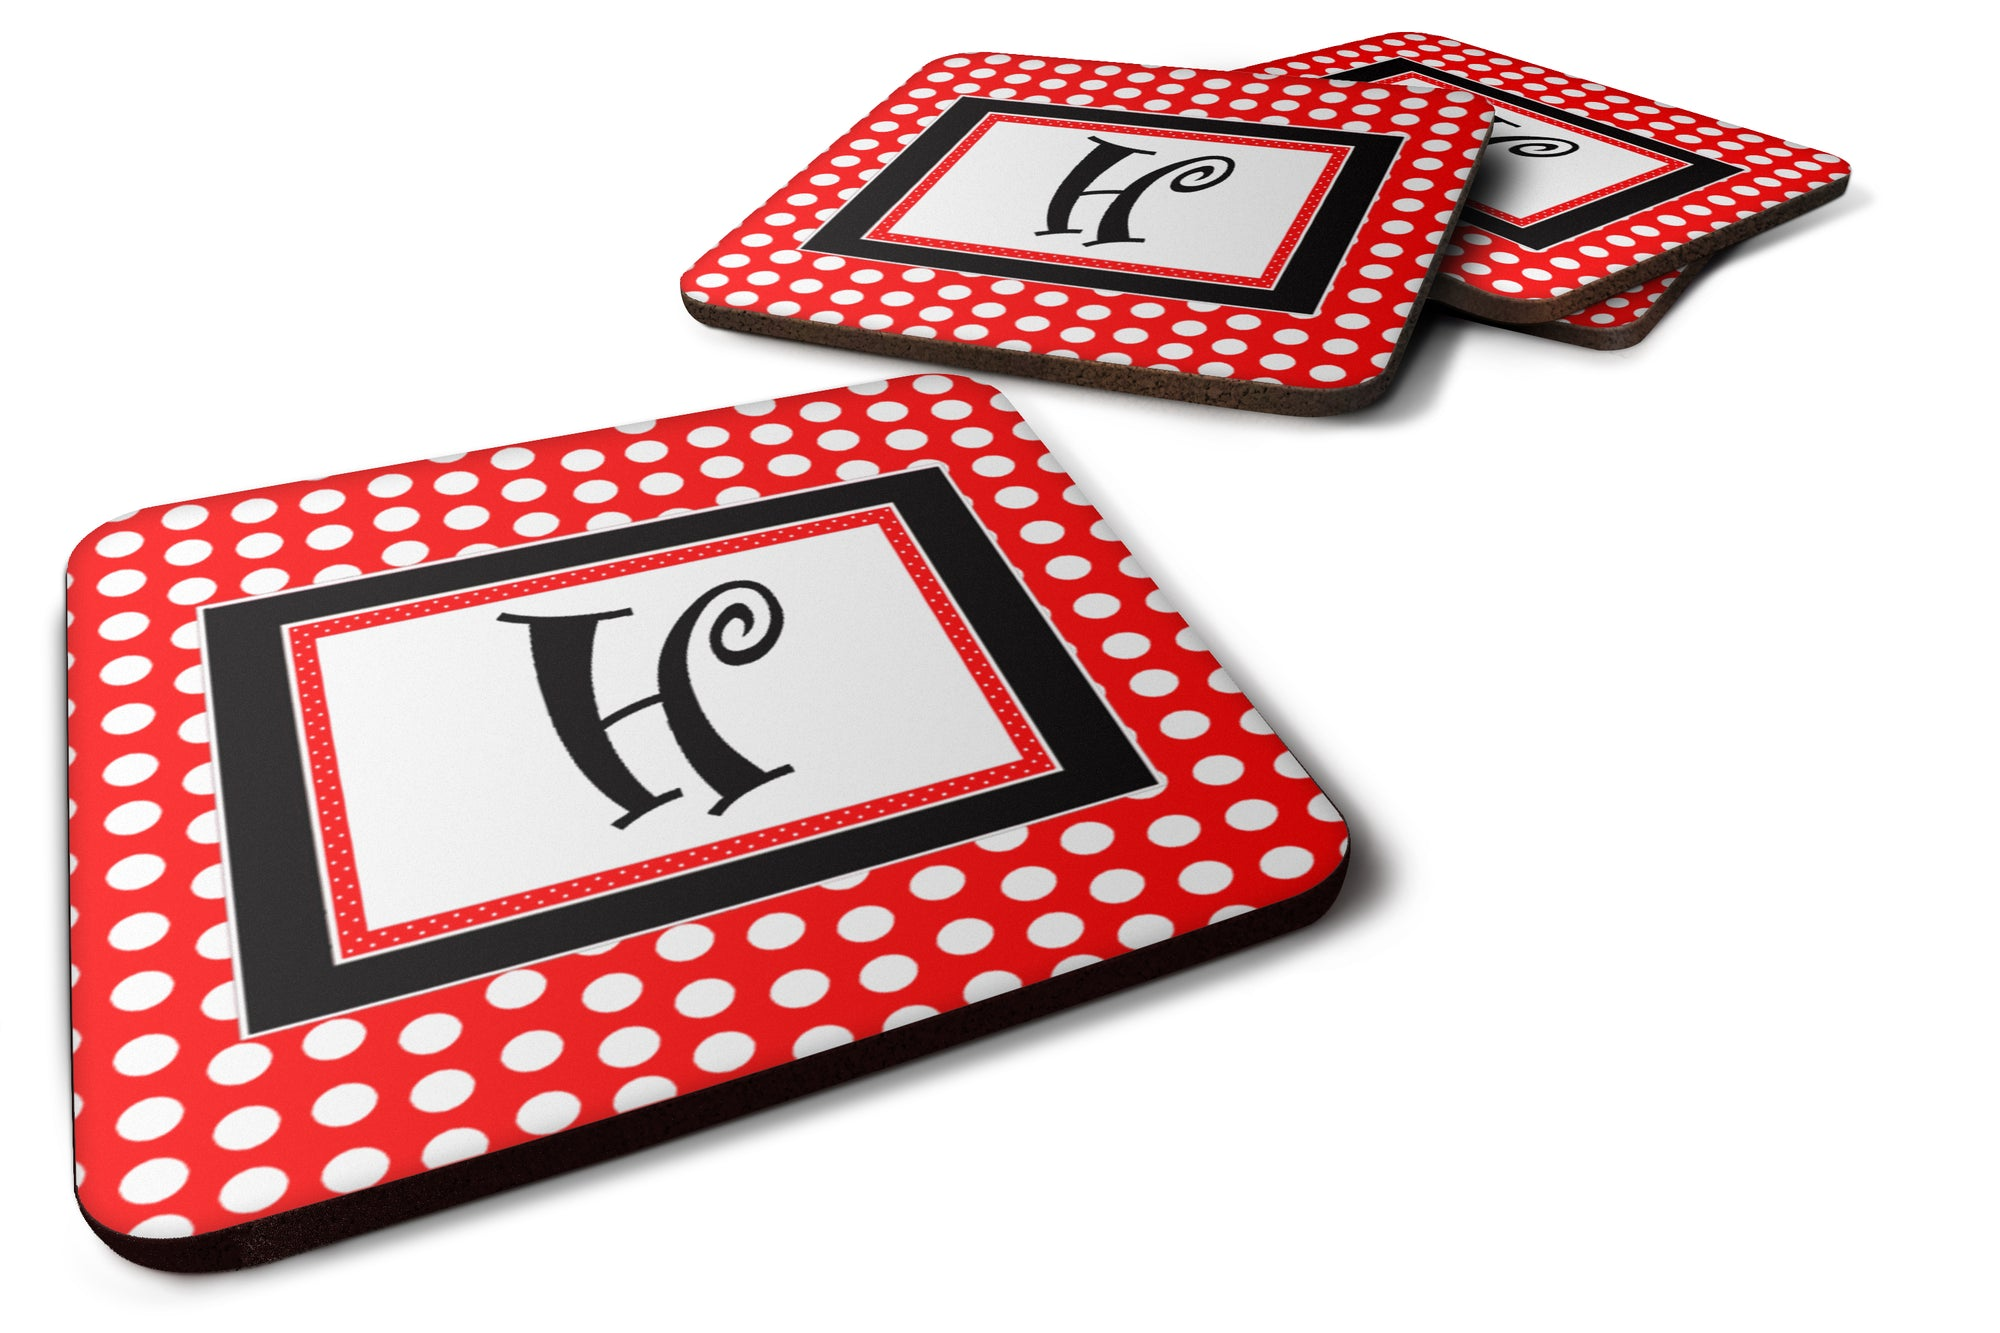 Set of 4 Monogram - Red Black Polka Dots Foam Coasters Initial Letter H by Caroline's Treasures